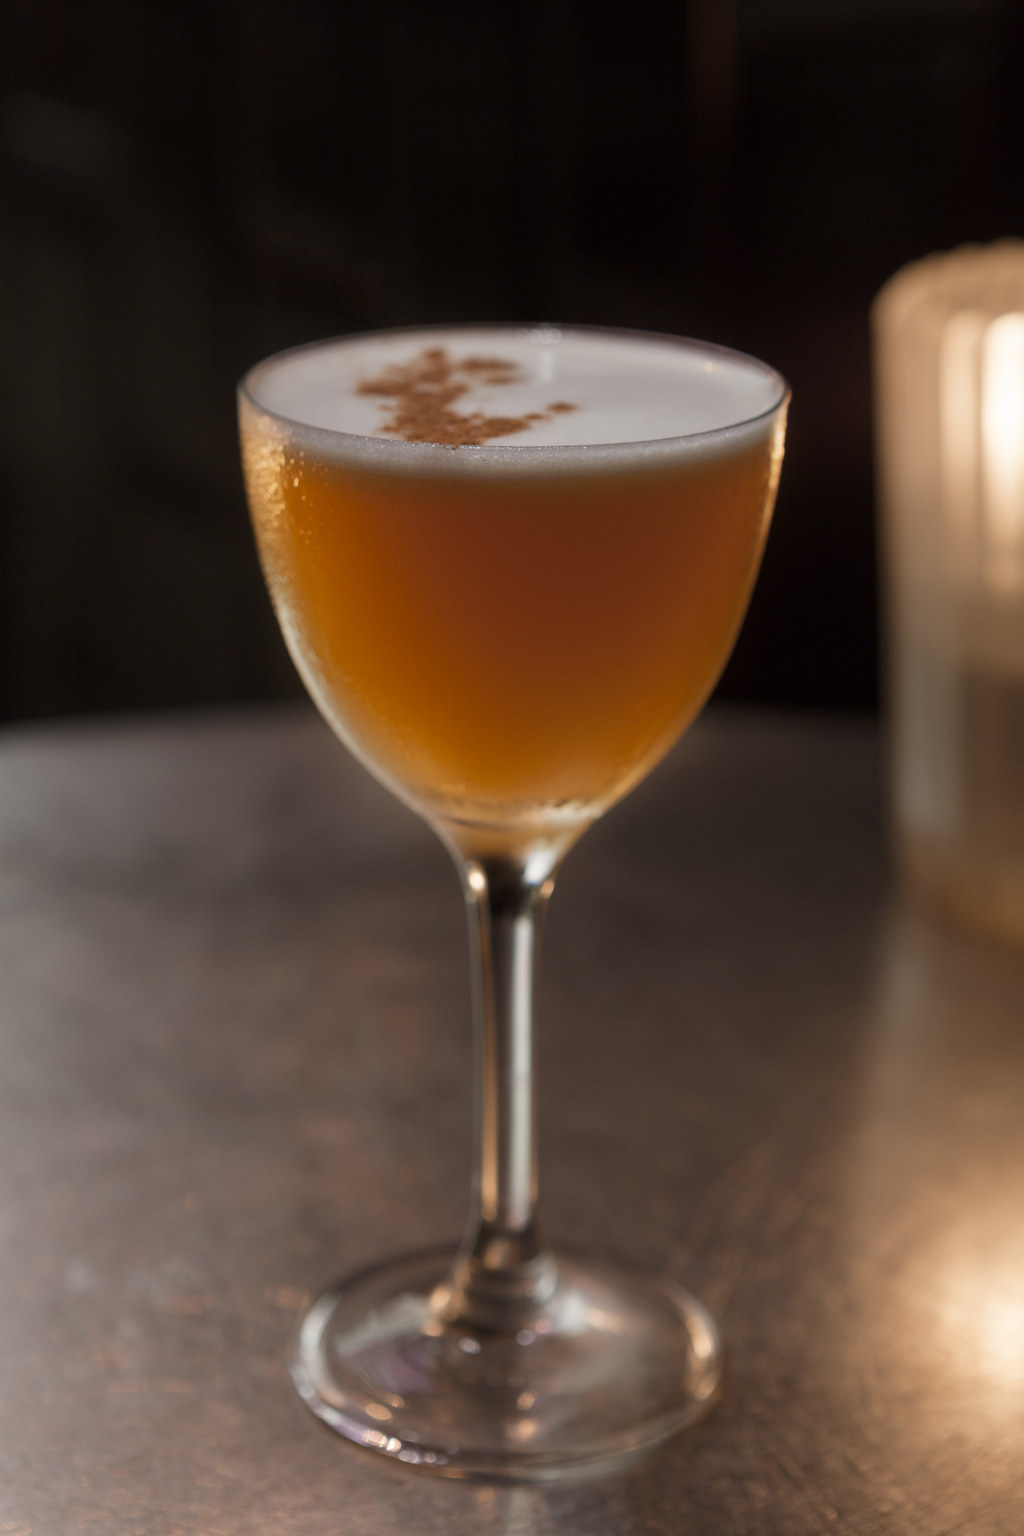 19 Whisky Cocktails You Must Drink This Burns Night